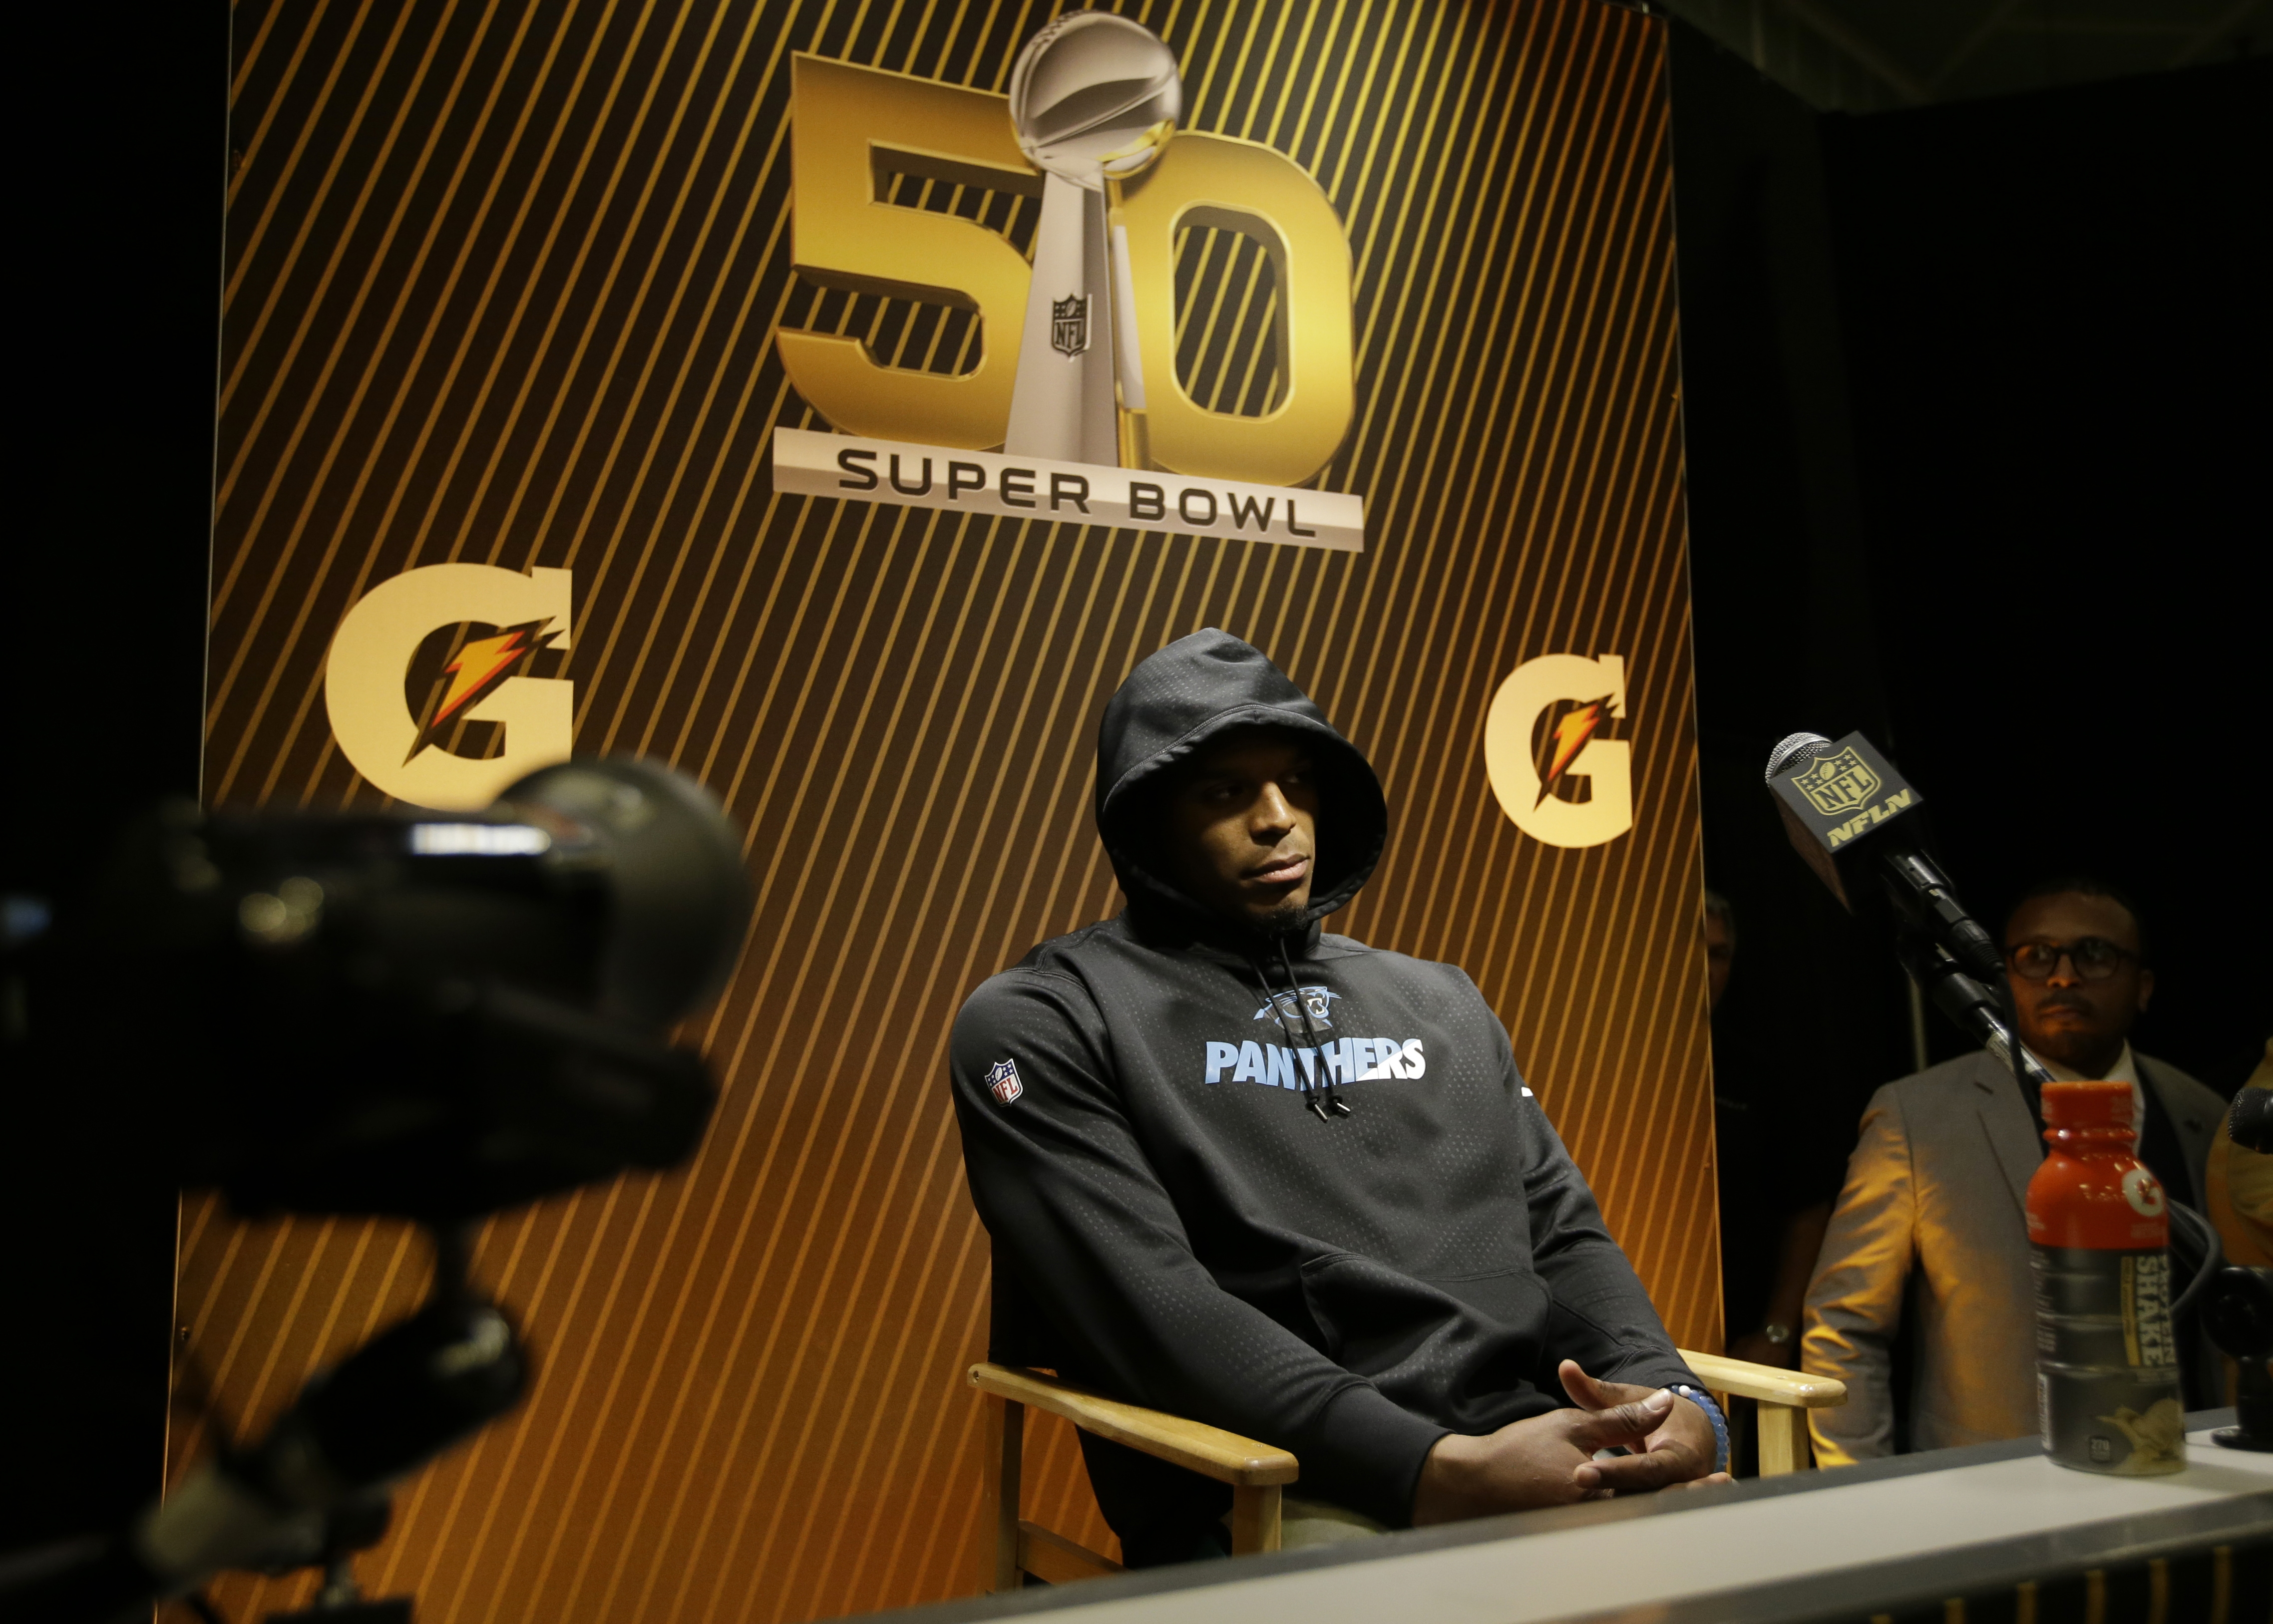 Carolina Panthers,' Cam Newton answers questions after the NFL Super Bowl 50 football game against the Denver Broncos in Santa Clara, Calif. on Feb. 7, 2016.